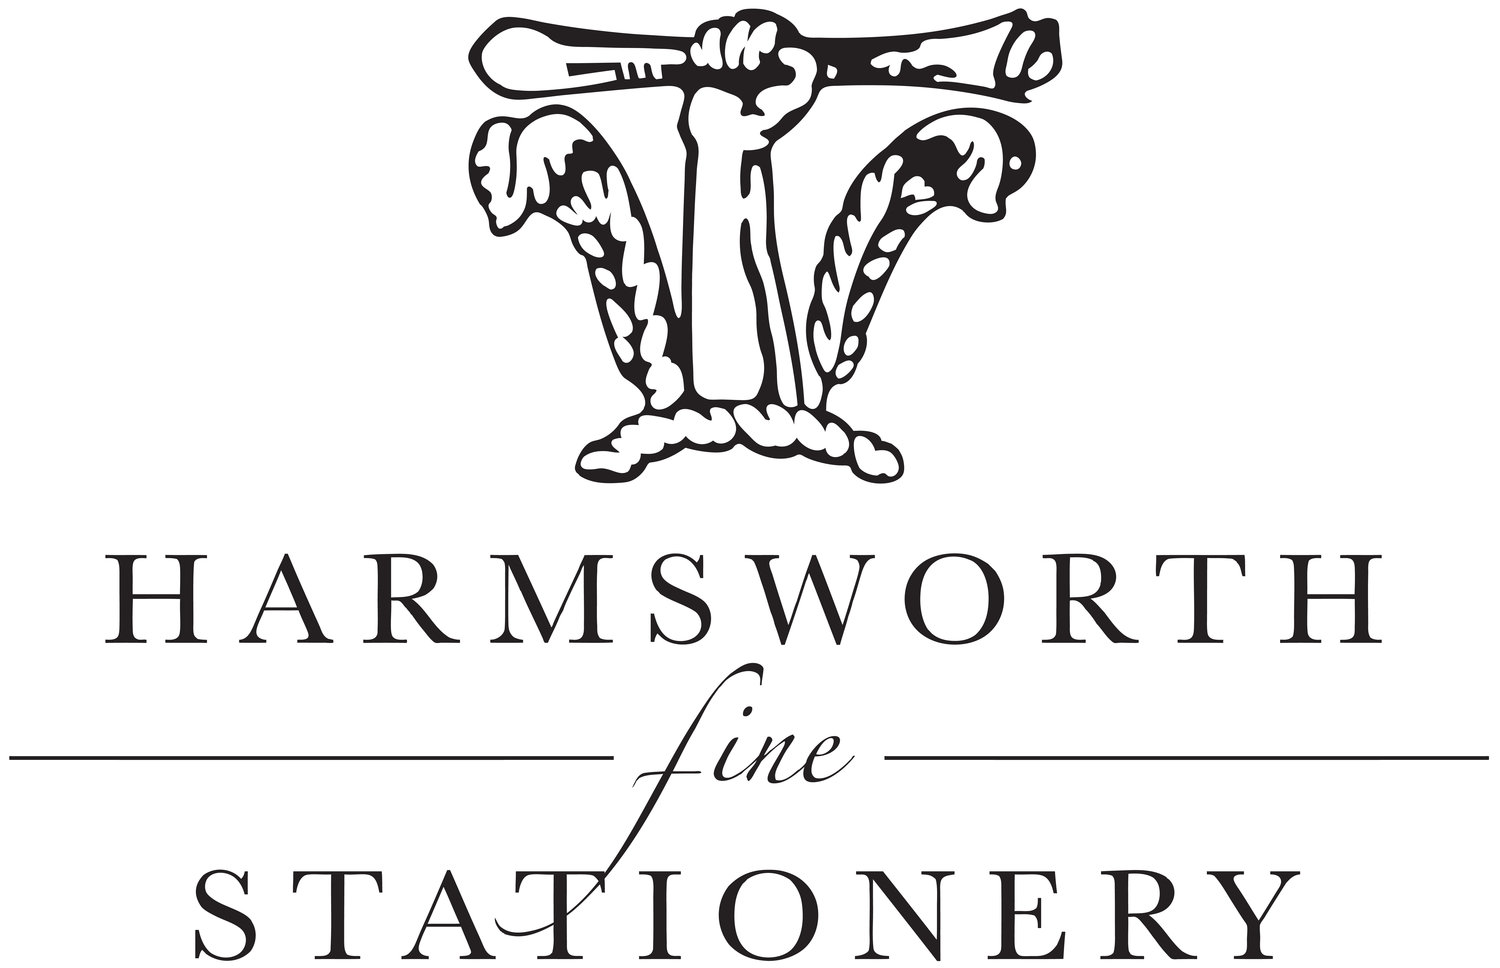 Harmsworth Fine Stationery